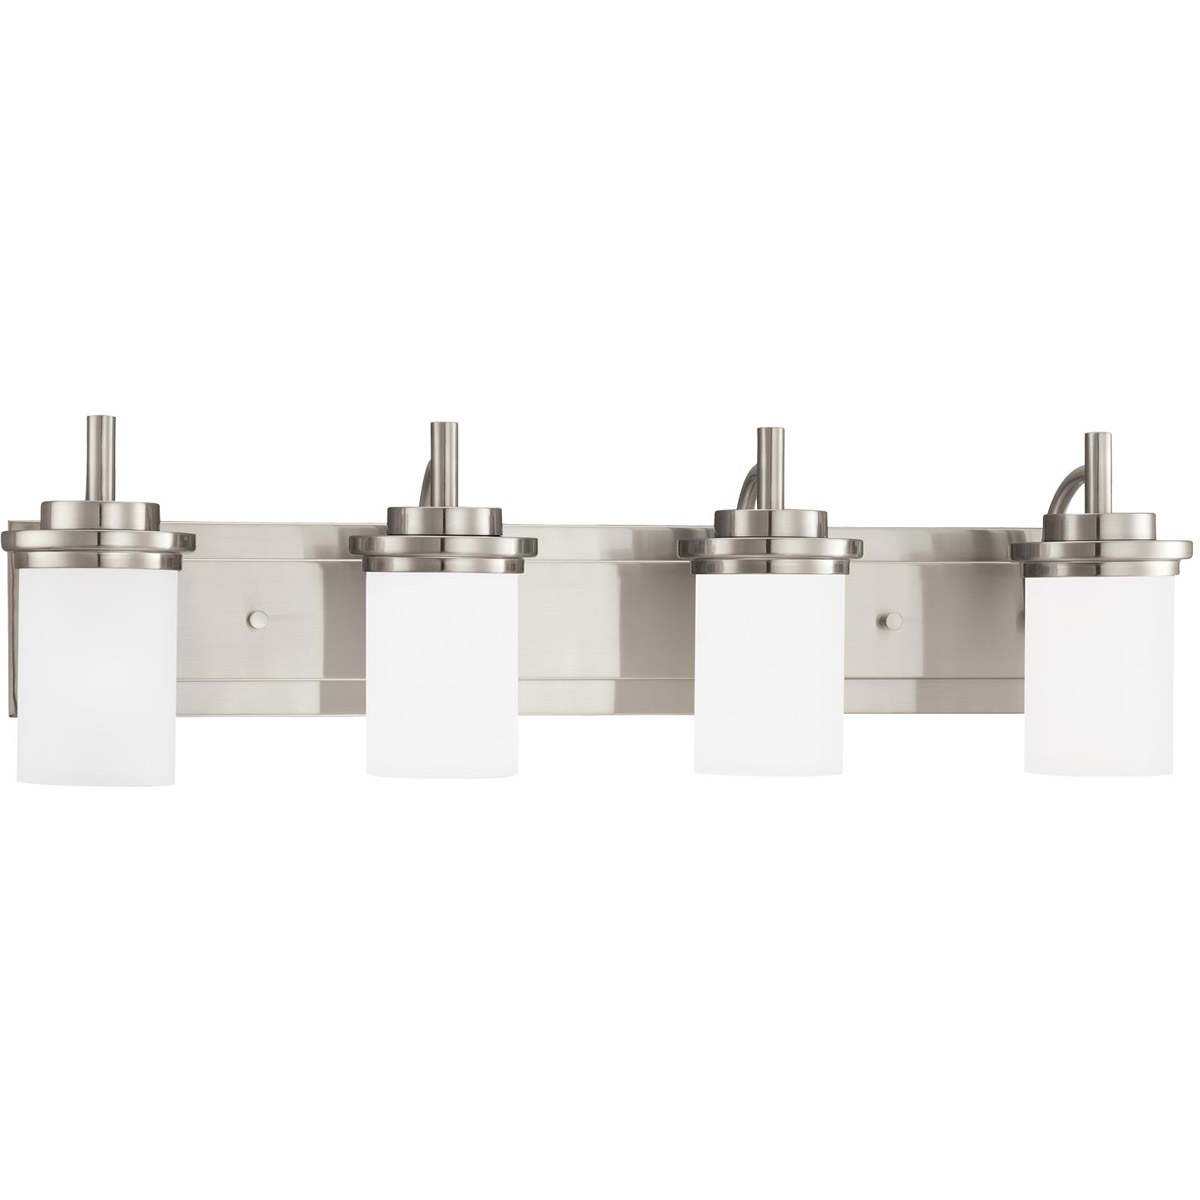 Sea Gull 44663-962 Winnetka 4 Light 32 inch Brushed Nickel Bath Vanity Wall Light in Satin Etched Glass, Standard photo